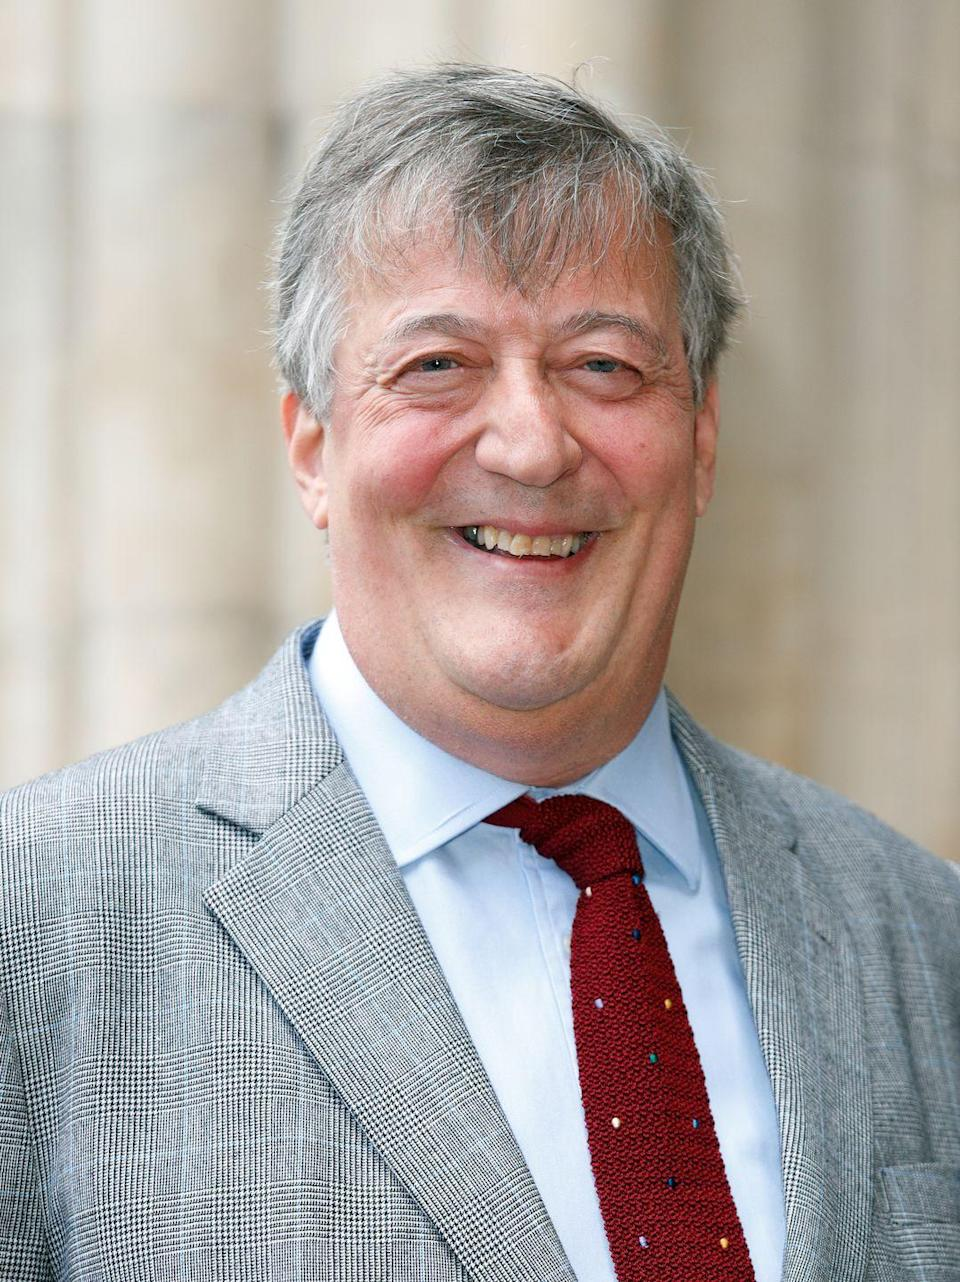 """<p>In 2006, the British comedian debuted a BBC documentary called <em>Stephen Fry: The Secret Life of the Manic Depressive</em>. The star didn't even learn he had the disease until the age of 37, """"but for the first time I had a diagnosis that explains the massive highs and miserable lows I've lived with all my life,"""" he <a href=""""https://www.time-to-change.org.uk/news-media/celebrity-supporters/stephen-fry"""" rel=""""nofollow noopener"""" target=""""_blank"""" data-ylk=""""slk:said"""" class=""""link rapid-noclick-resp"""">said</a>.</p>"""